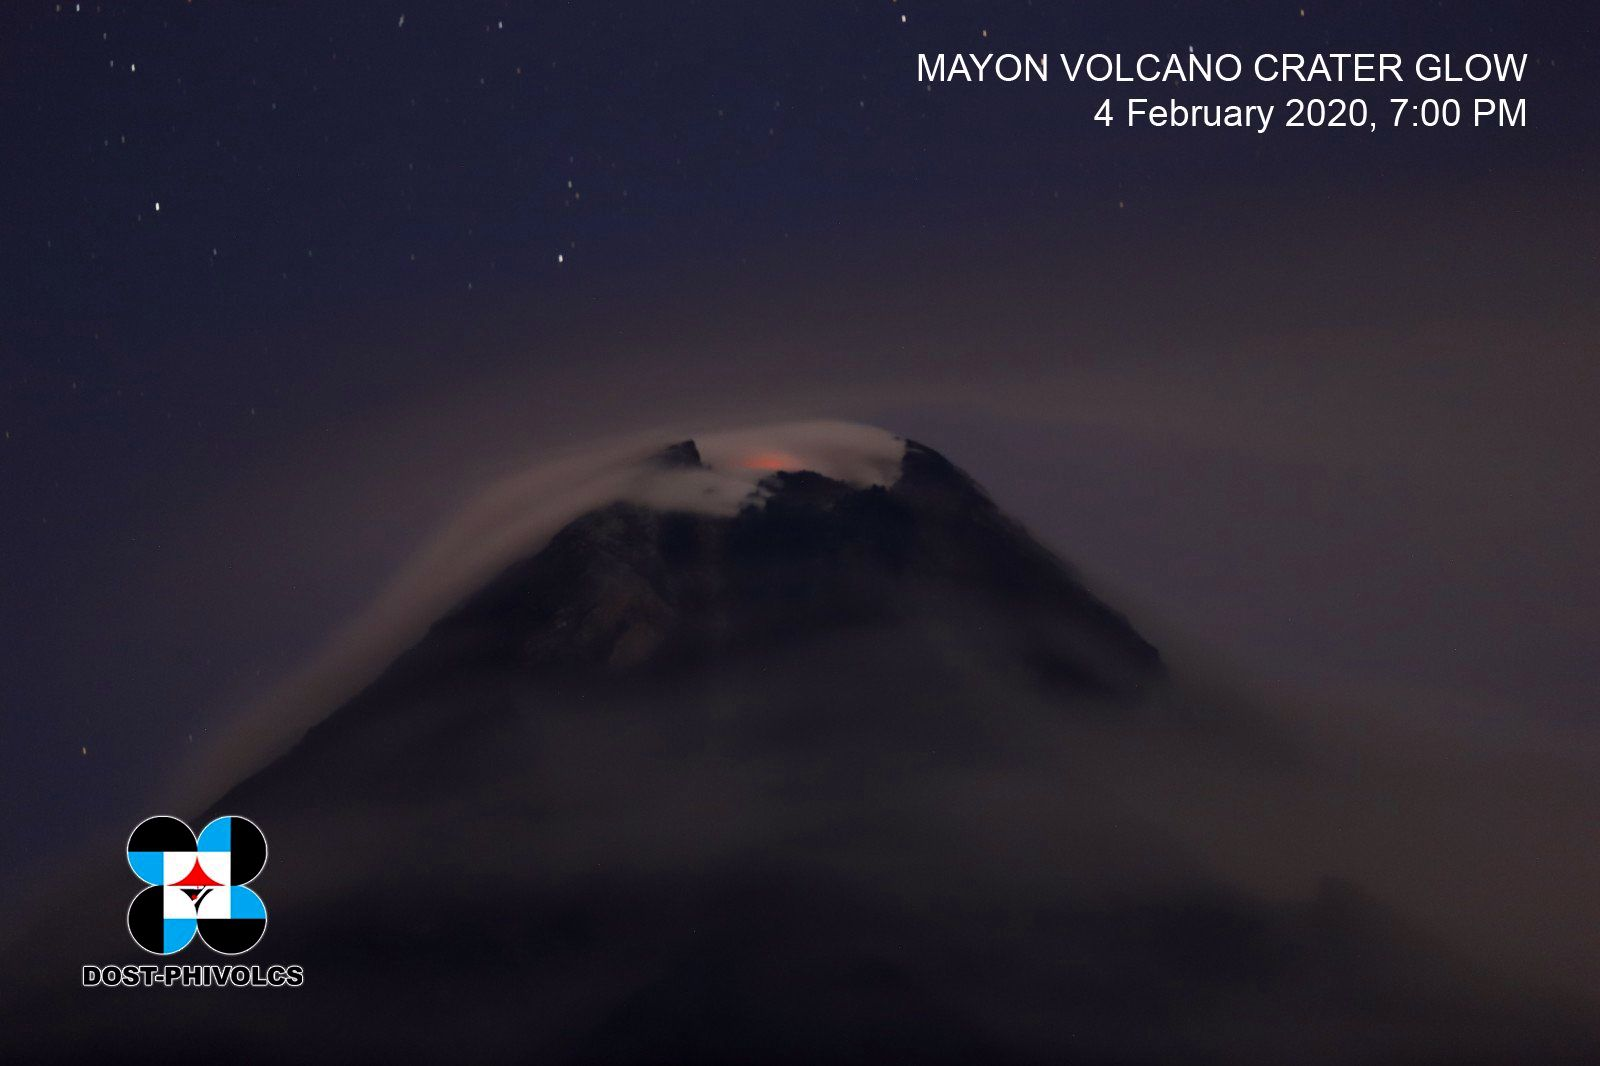 Mayon - degassing and night glow - photo archives 04.02.2020 / Dost-Phivolcs